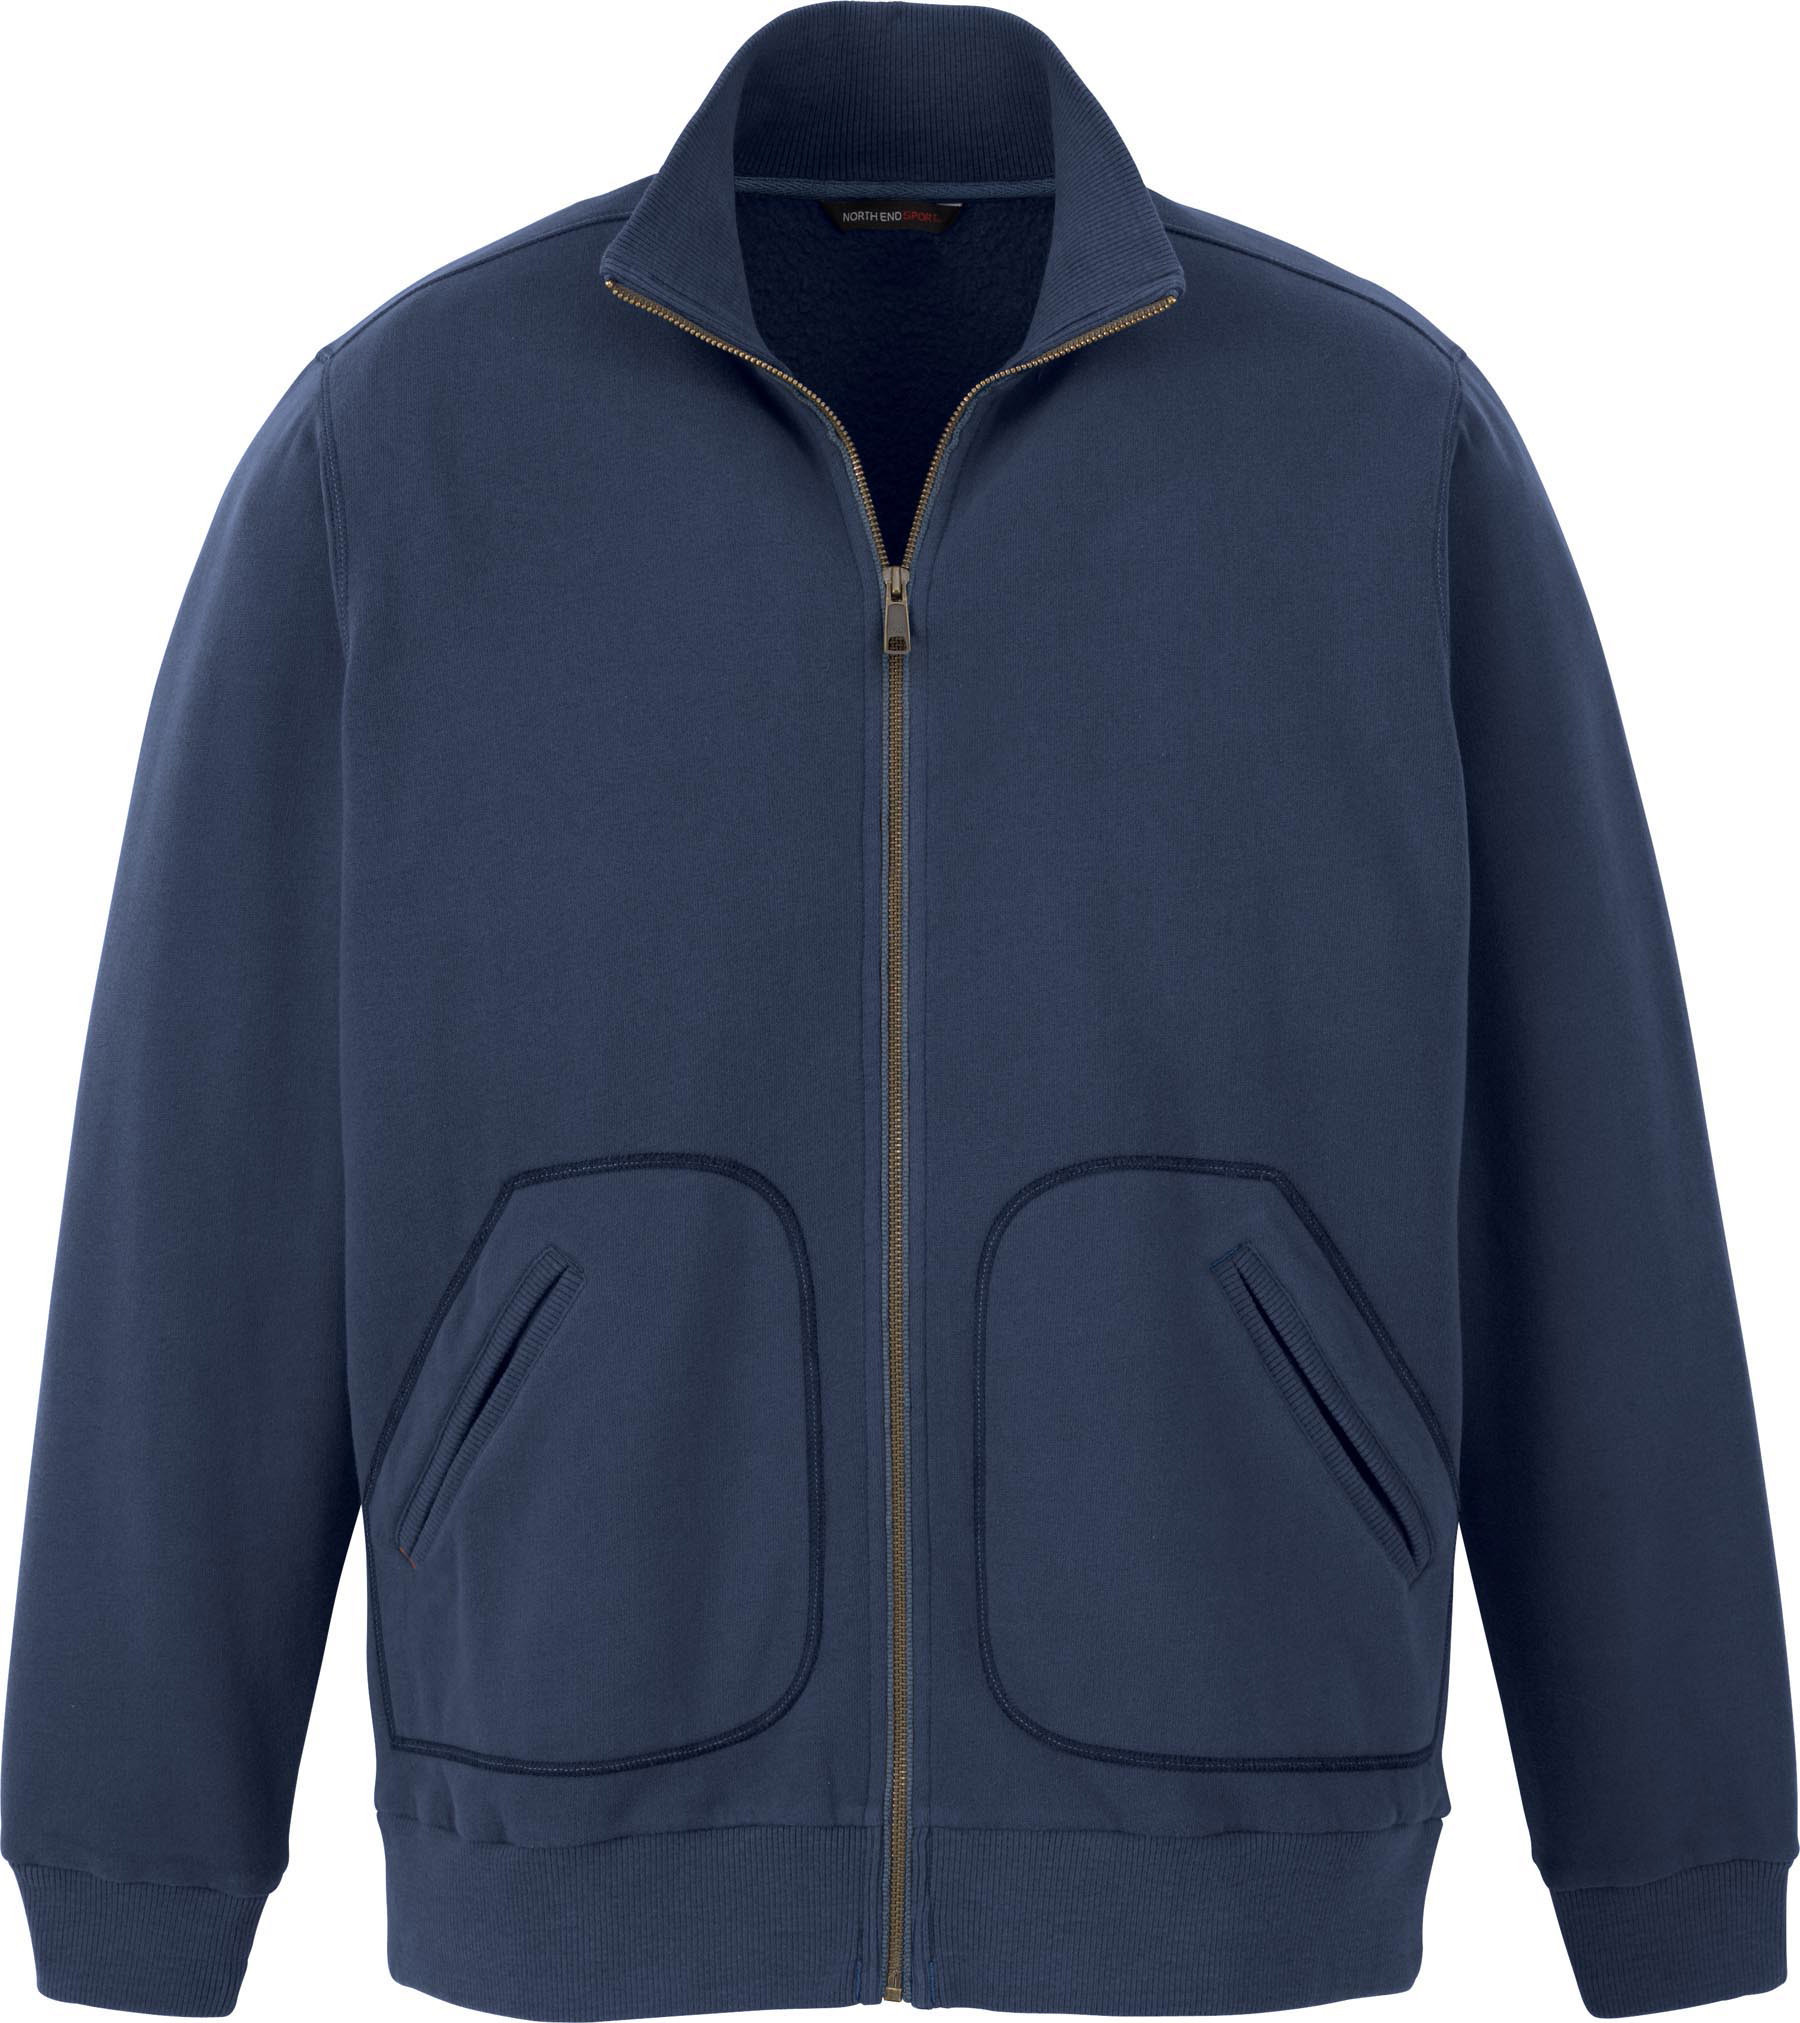 Ash City Cotton/Poly Fleece 88642 - Men's Cotton Polyester ...